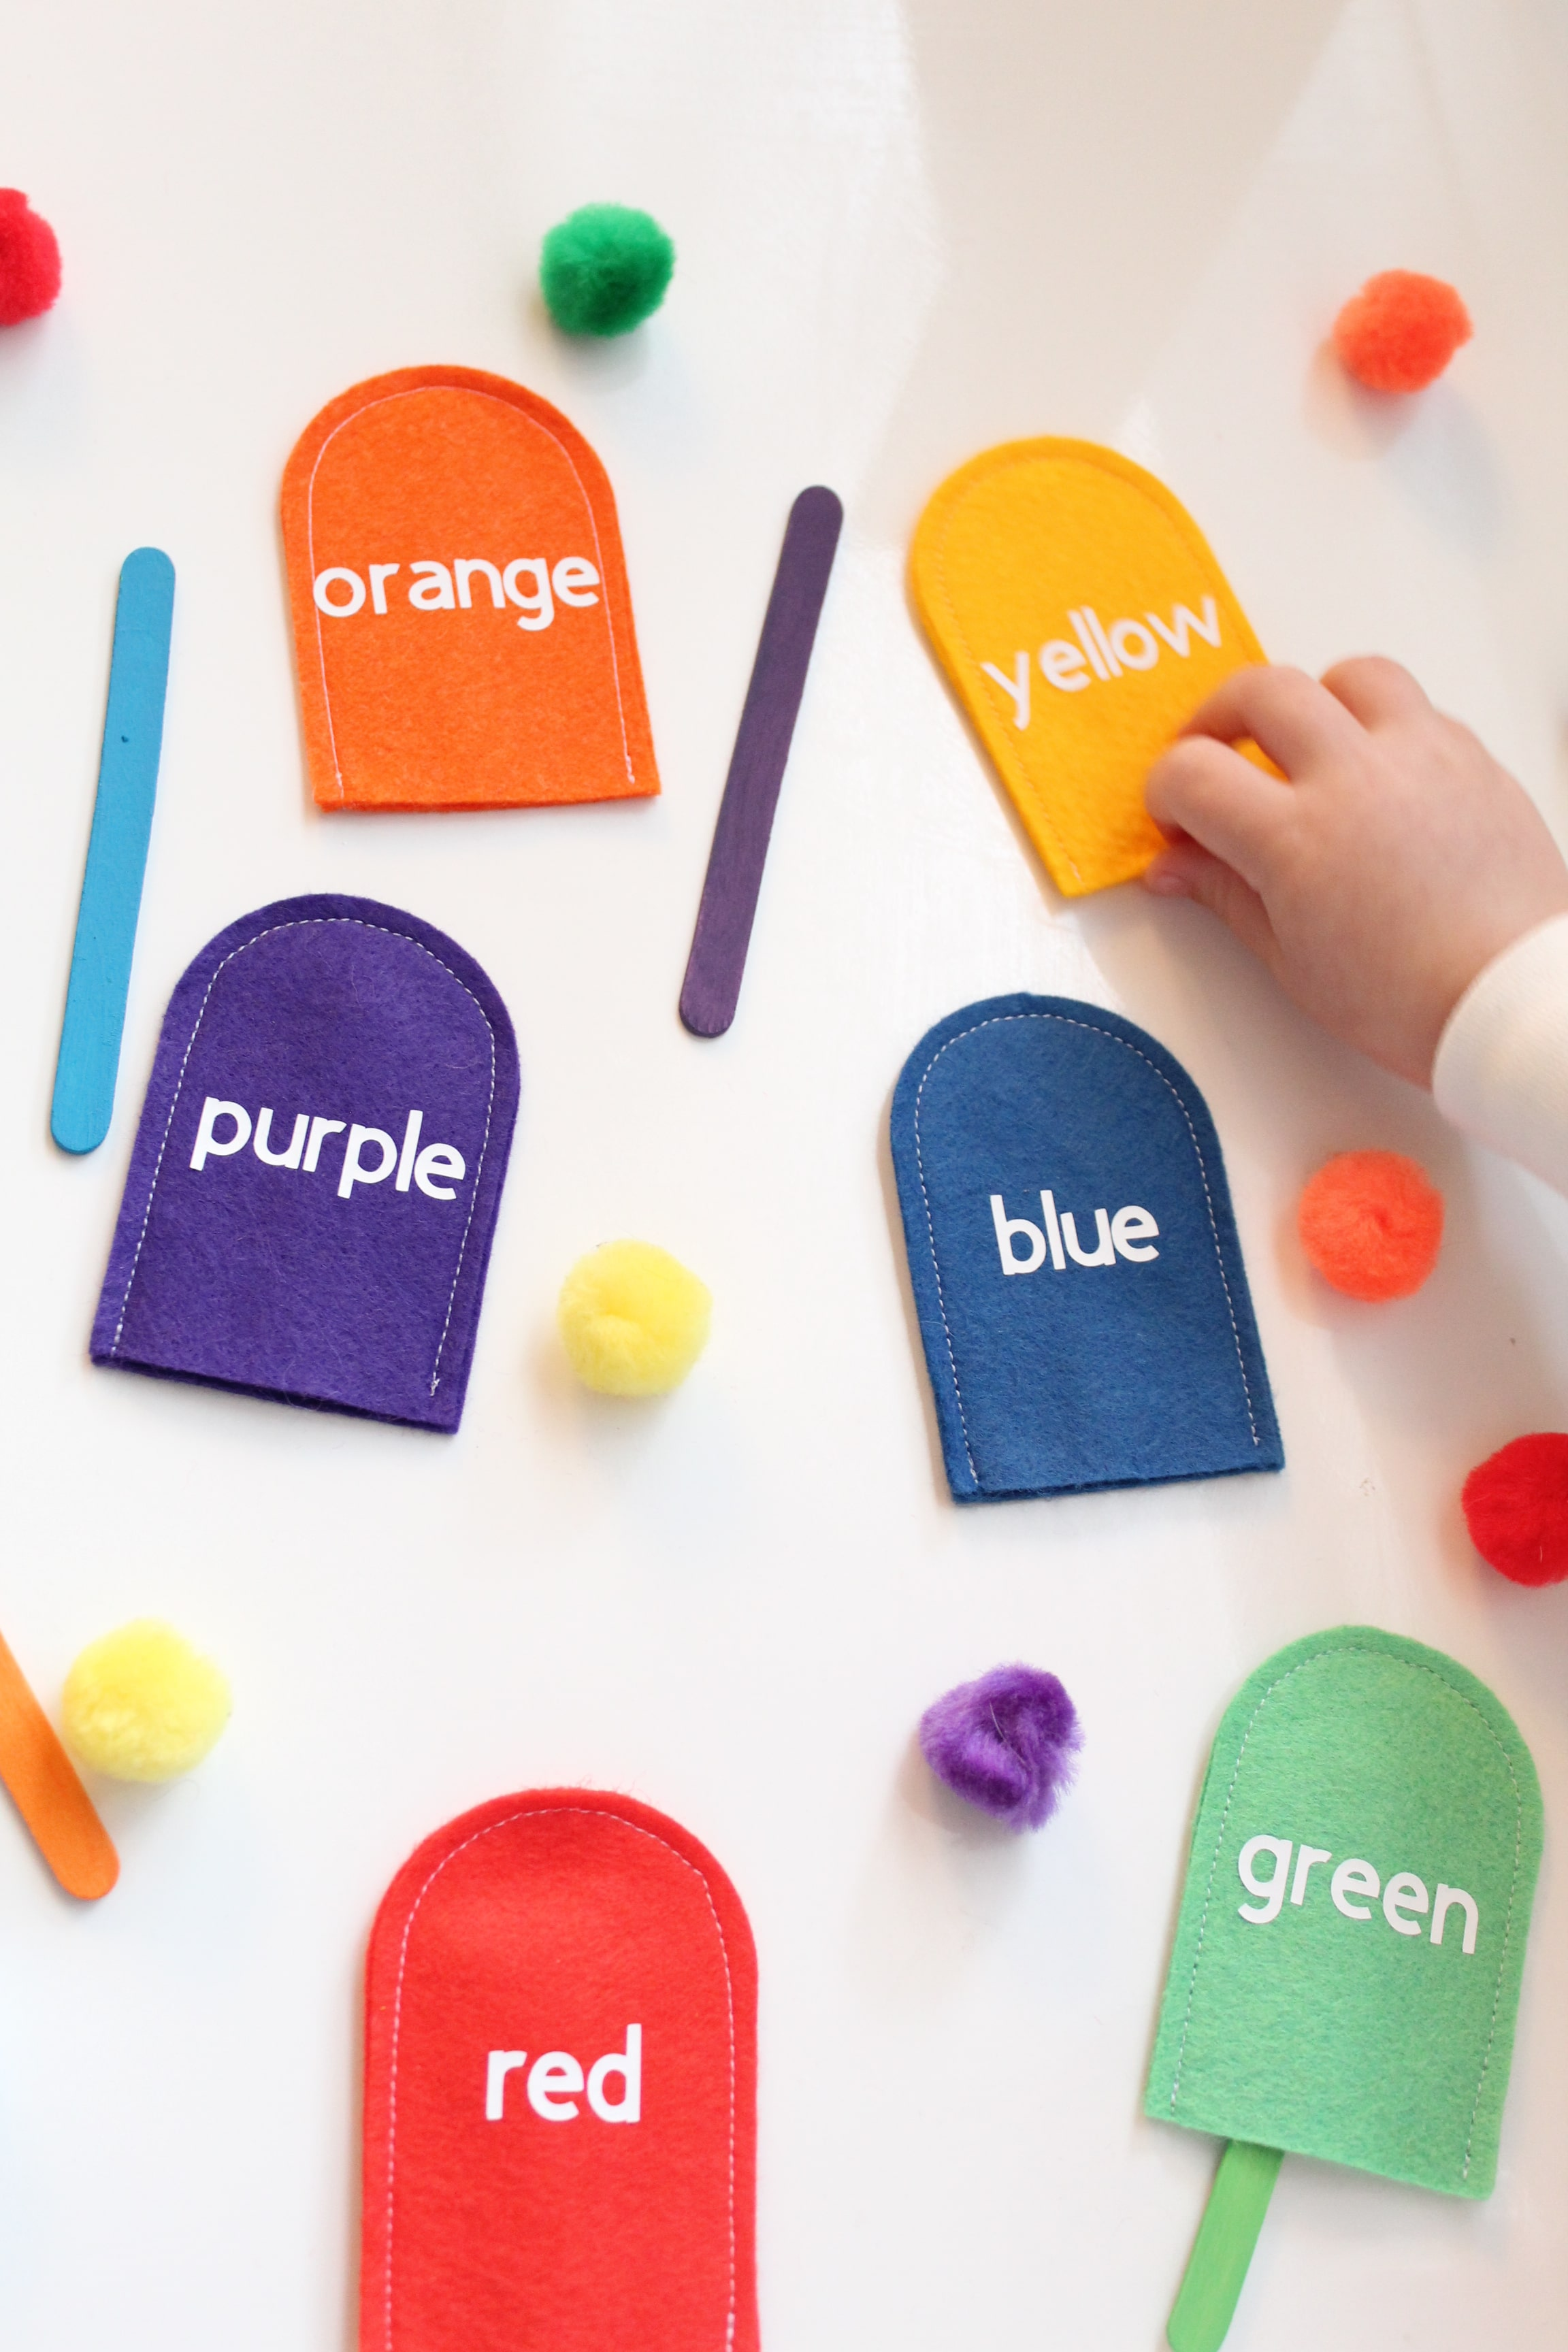 Your little one will have SO much fun learning their colors with this DIY felt popsicle color matching activity!